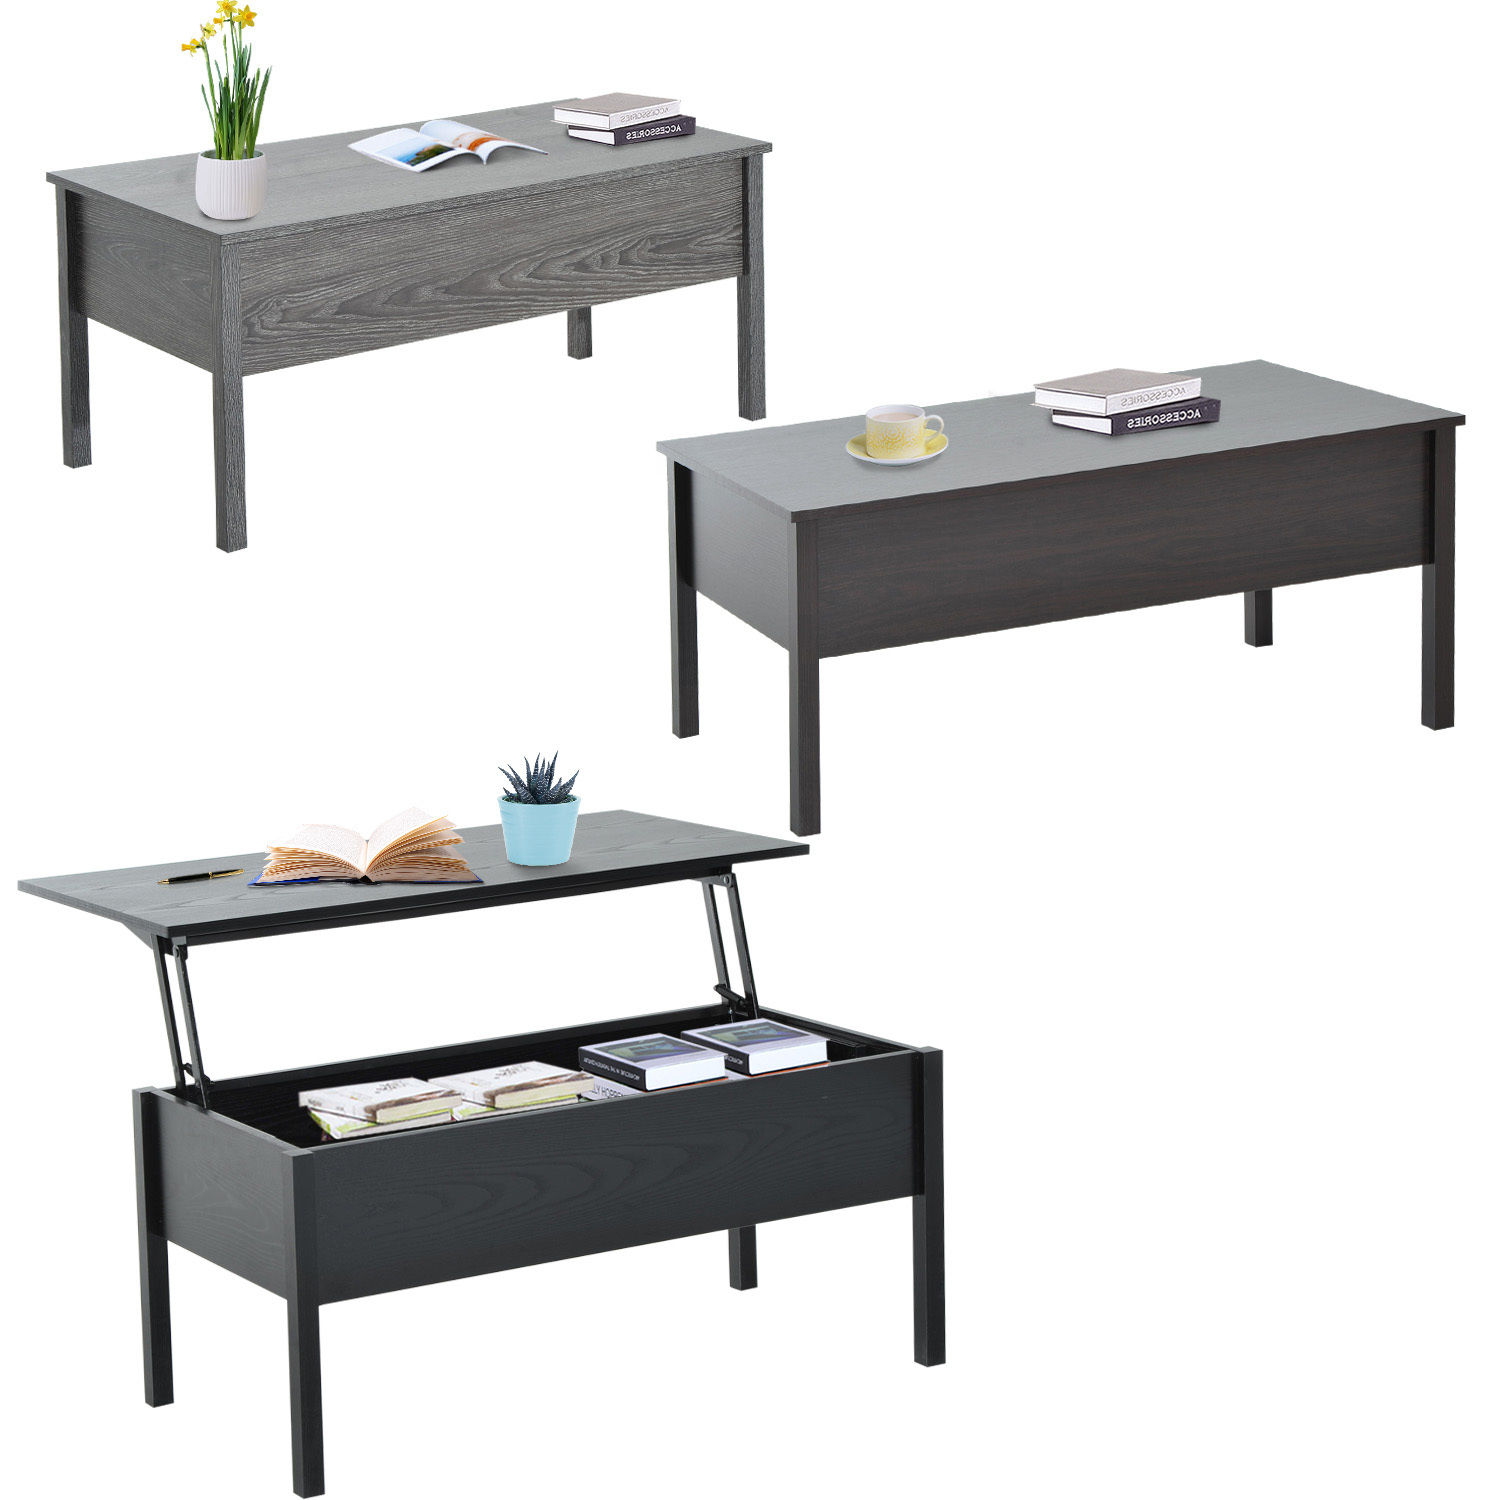 Coffee And End Tables With Storage Details About Modern Coffee End Table Lift Top With Storage Space Living Room Home Furniture